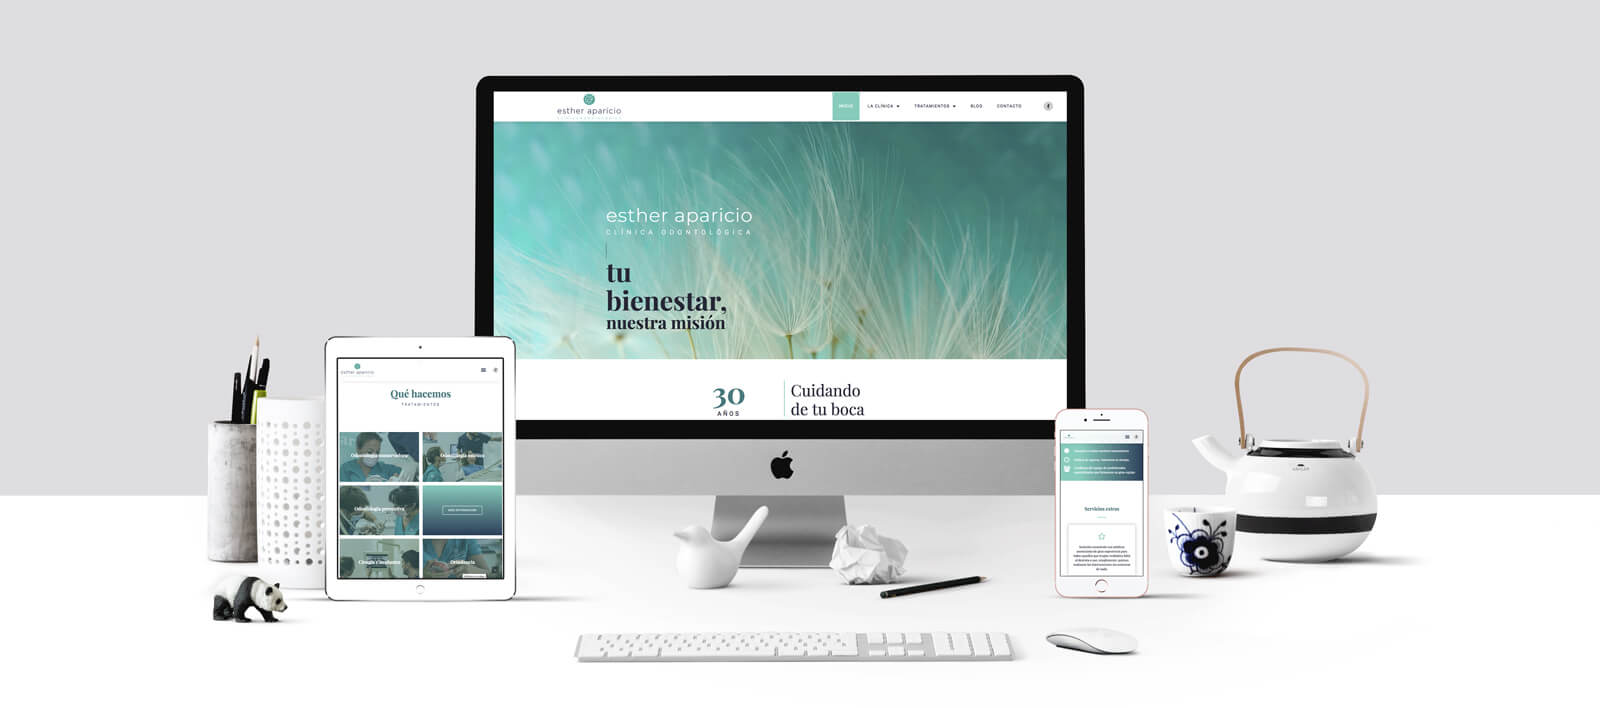 ideandoazul-web-diseno-wordpress